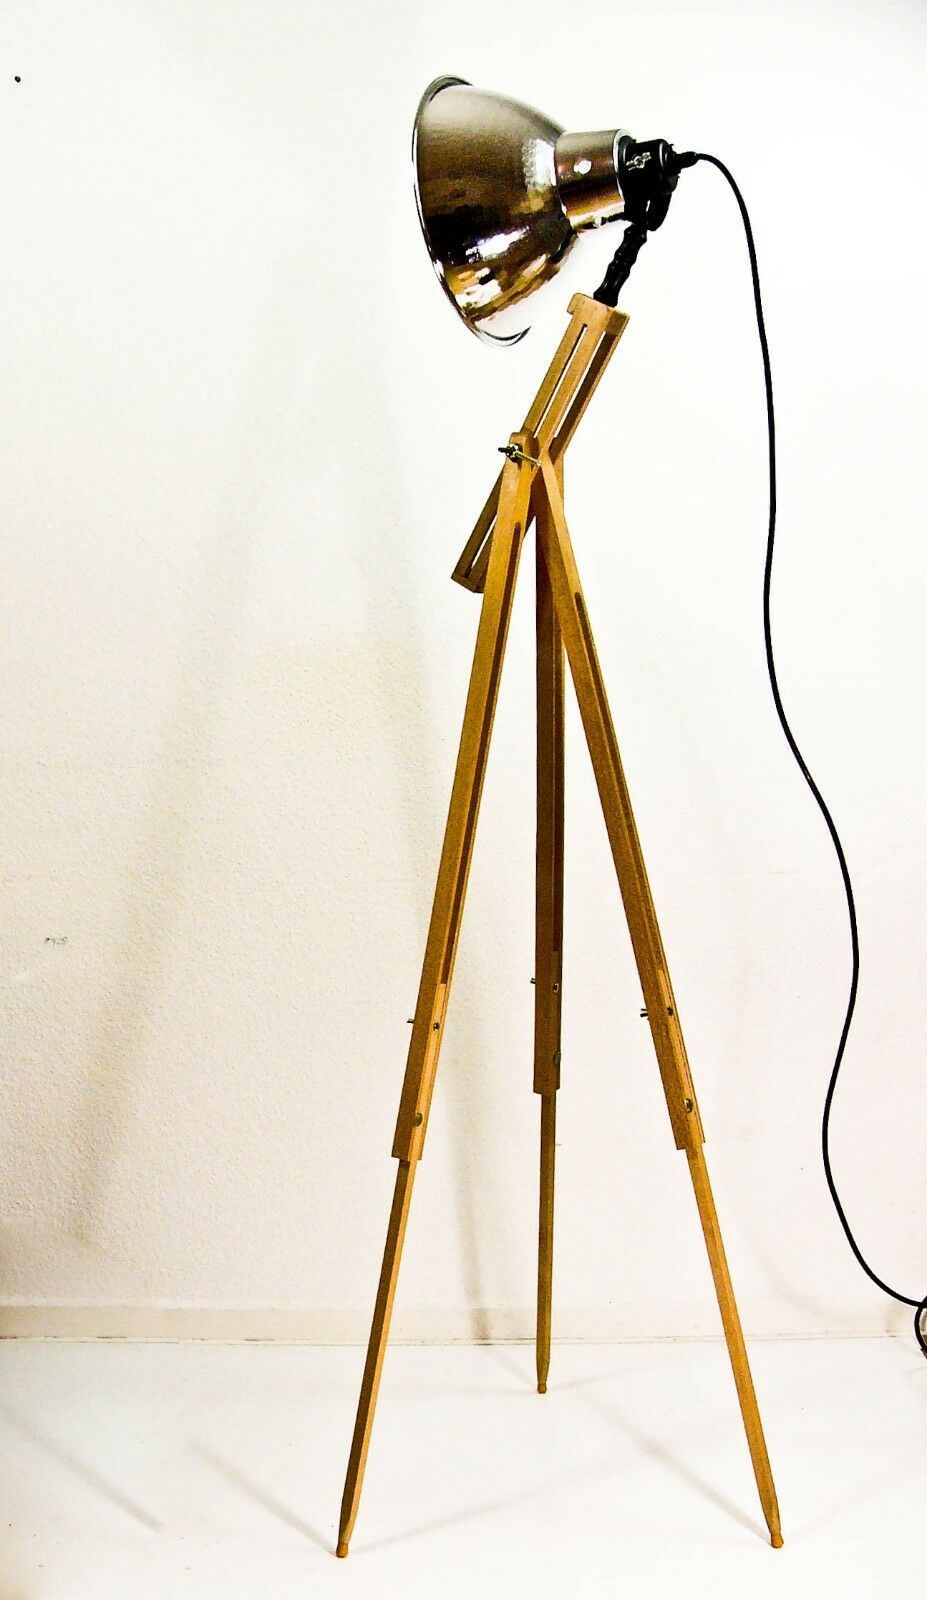 stativ design lampe tripod stehlampe im industrie retro stil 70 er picclick de. Black Bedroom Furniture Sets. Home Design Ideas